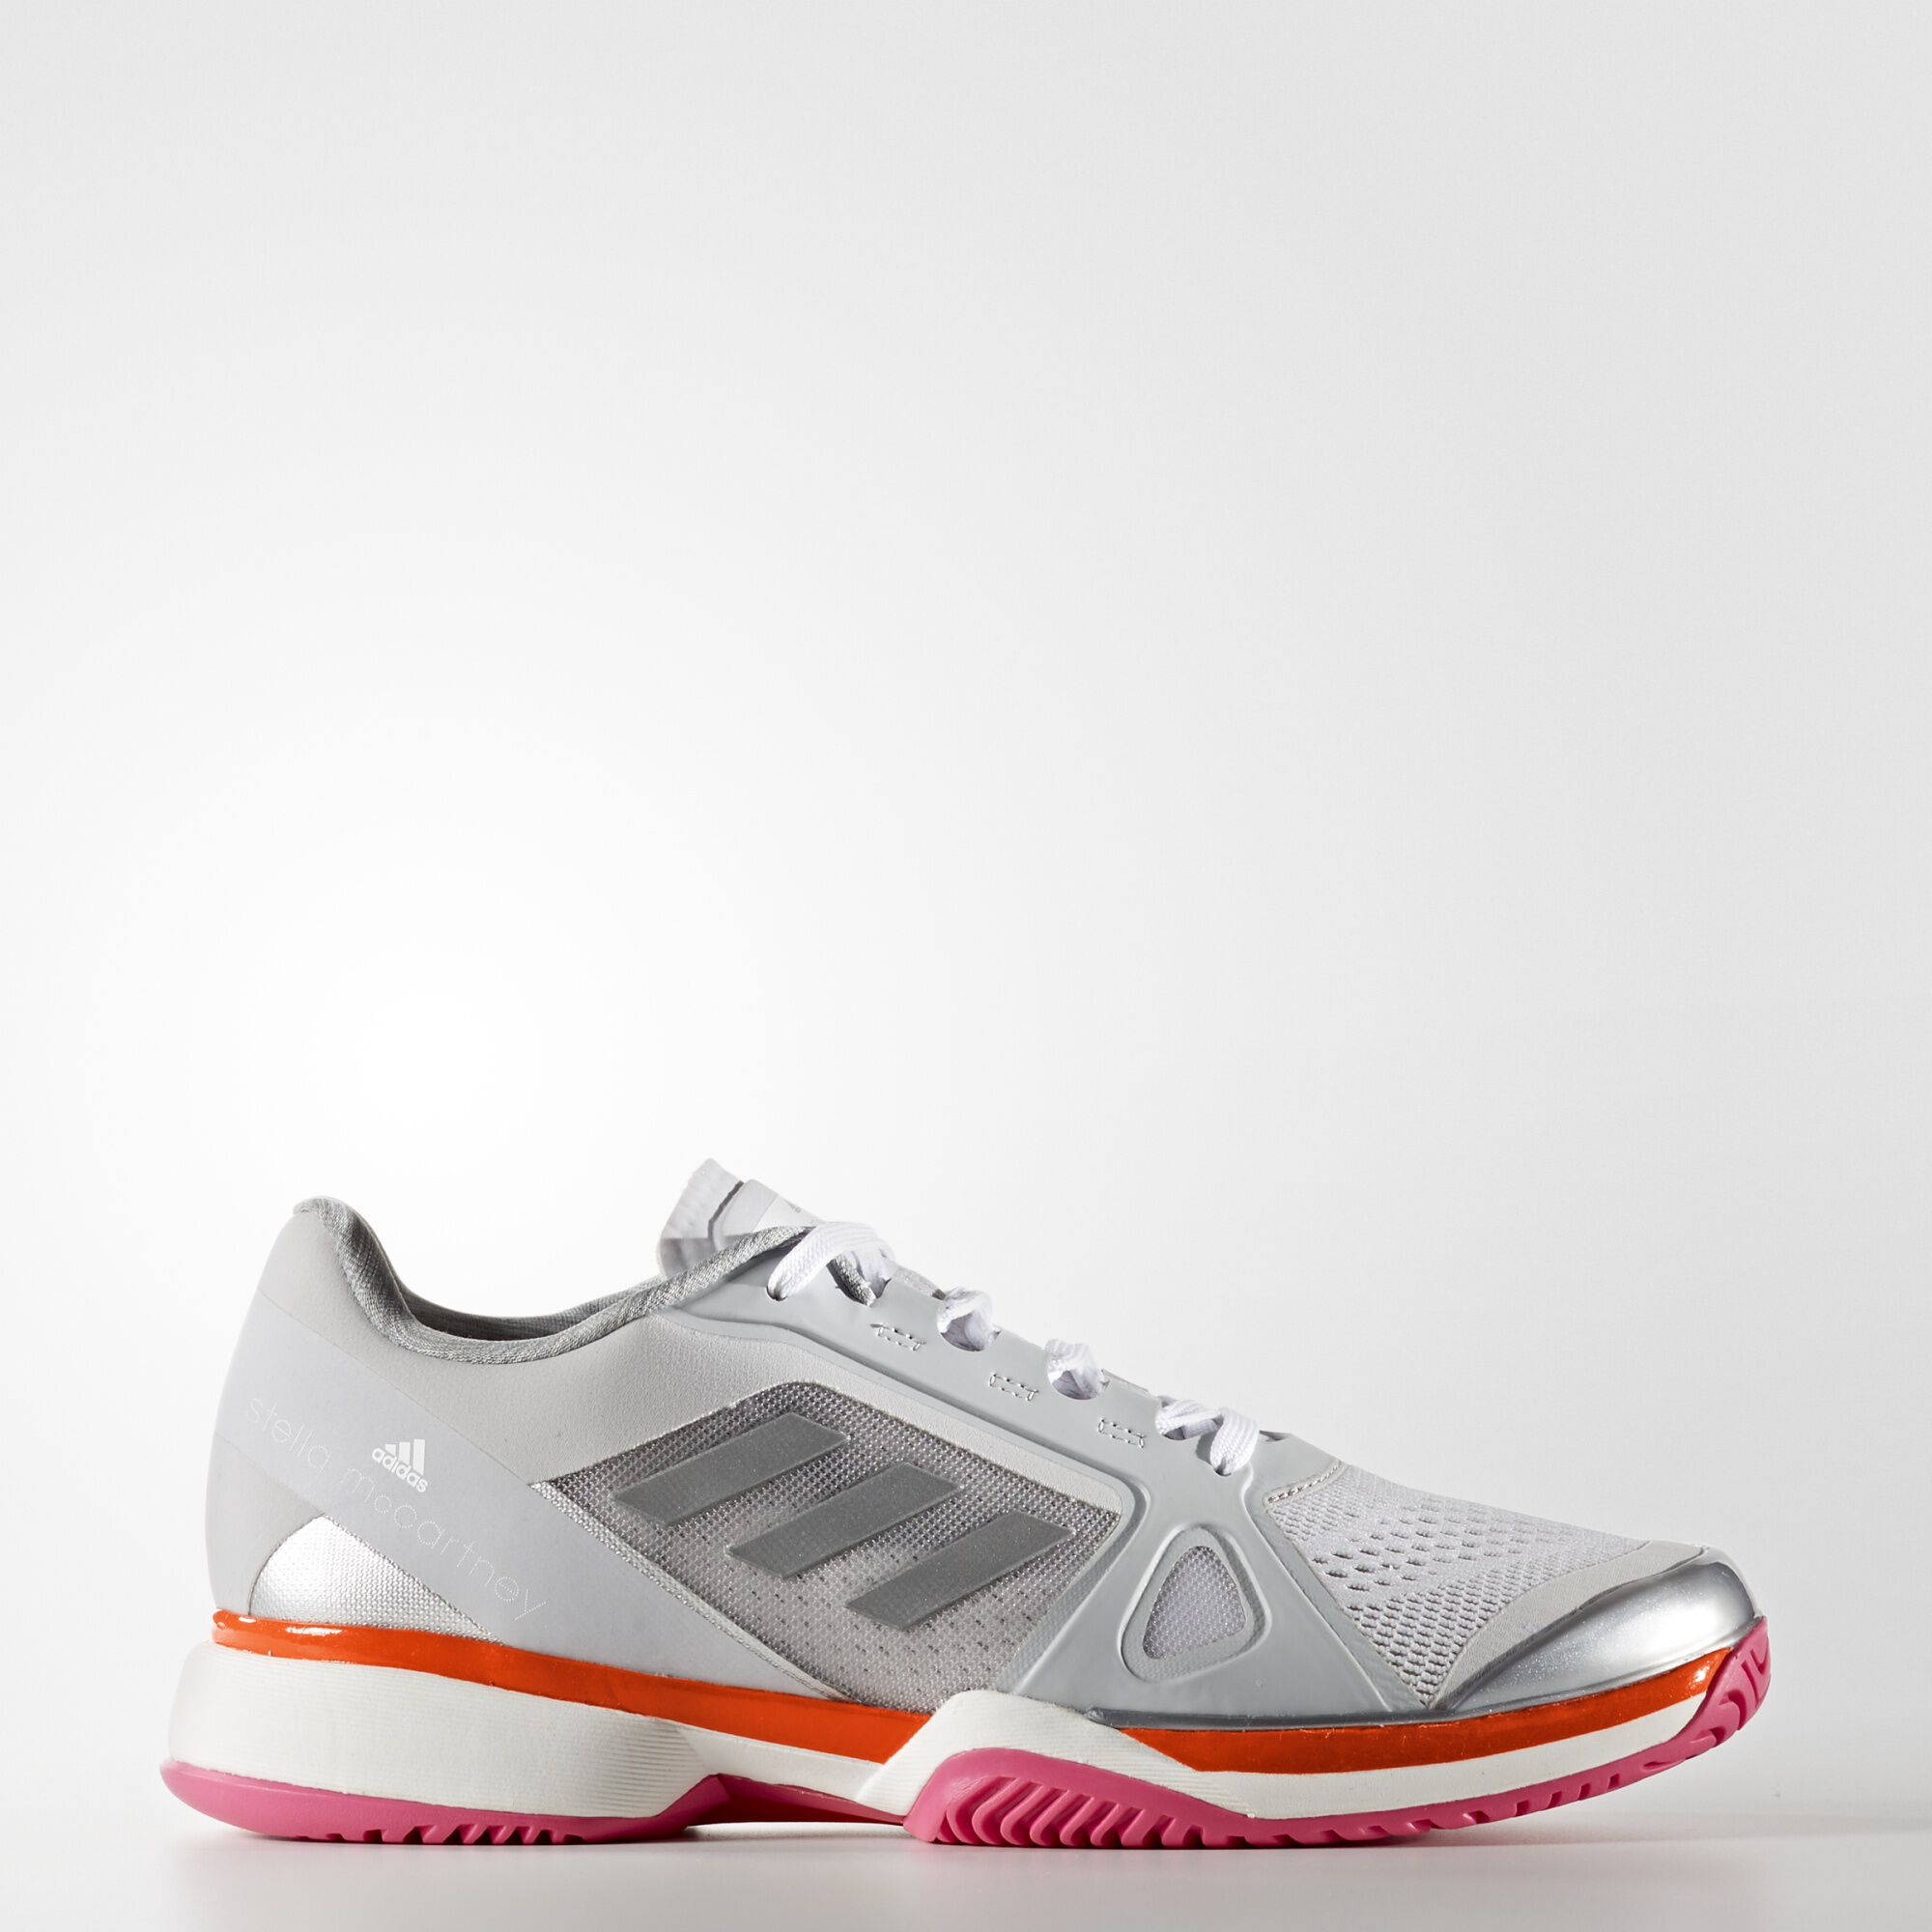 adidas womens tennis shoes on sale